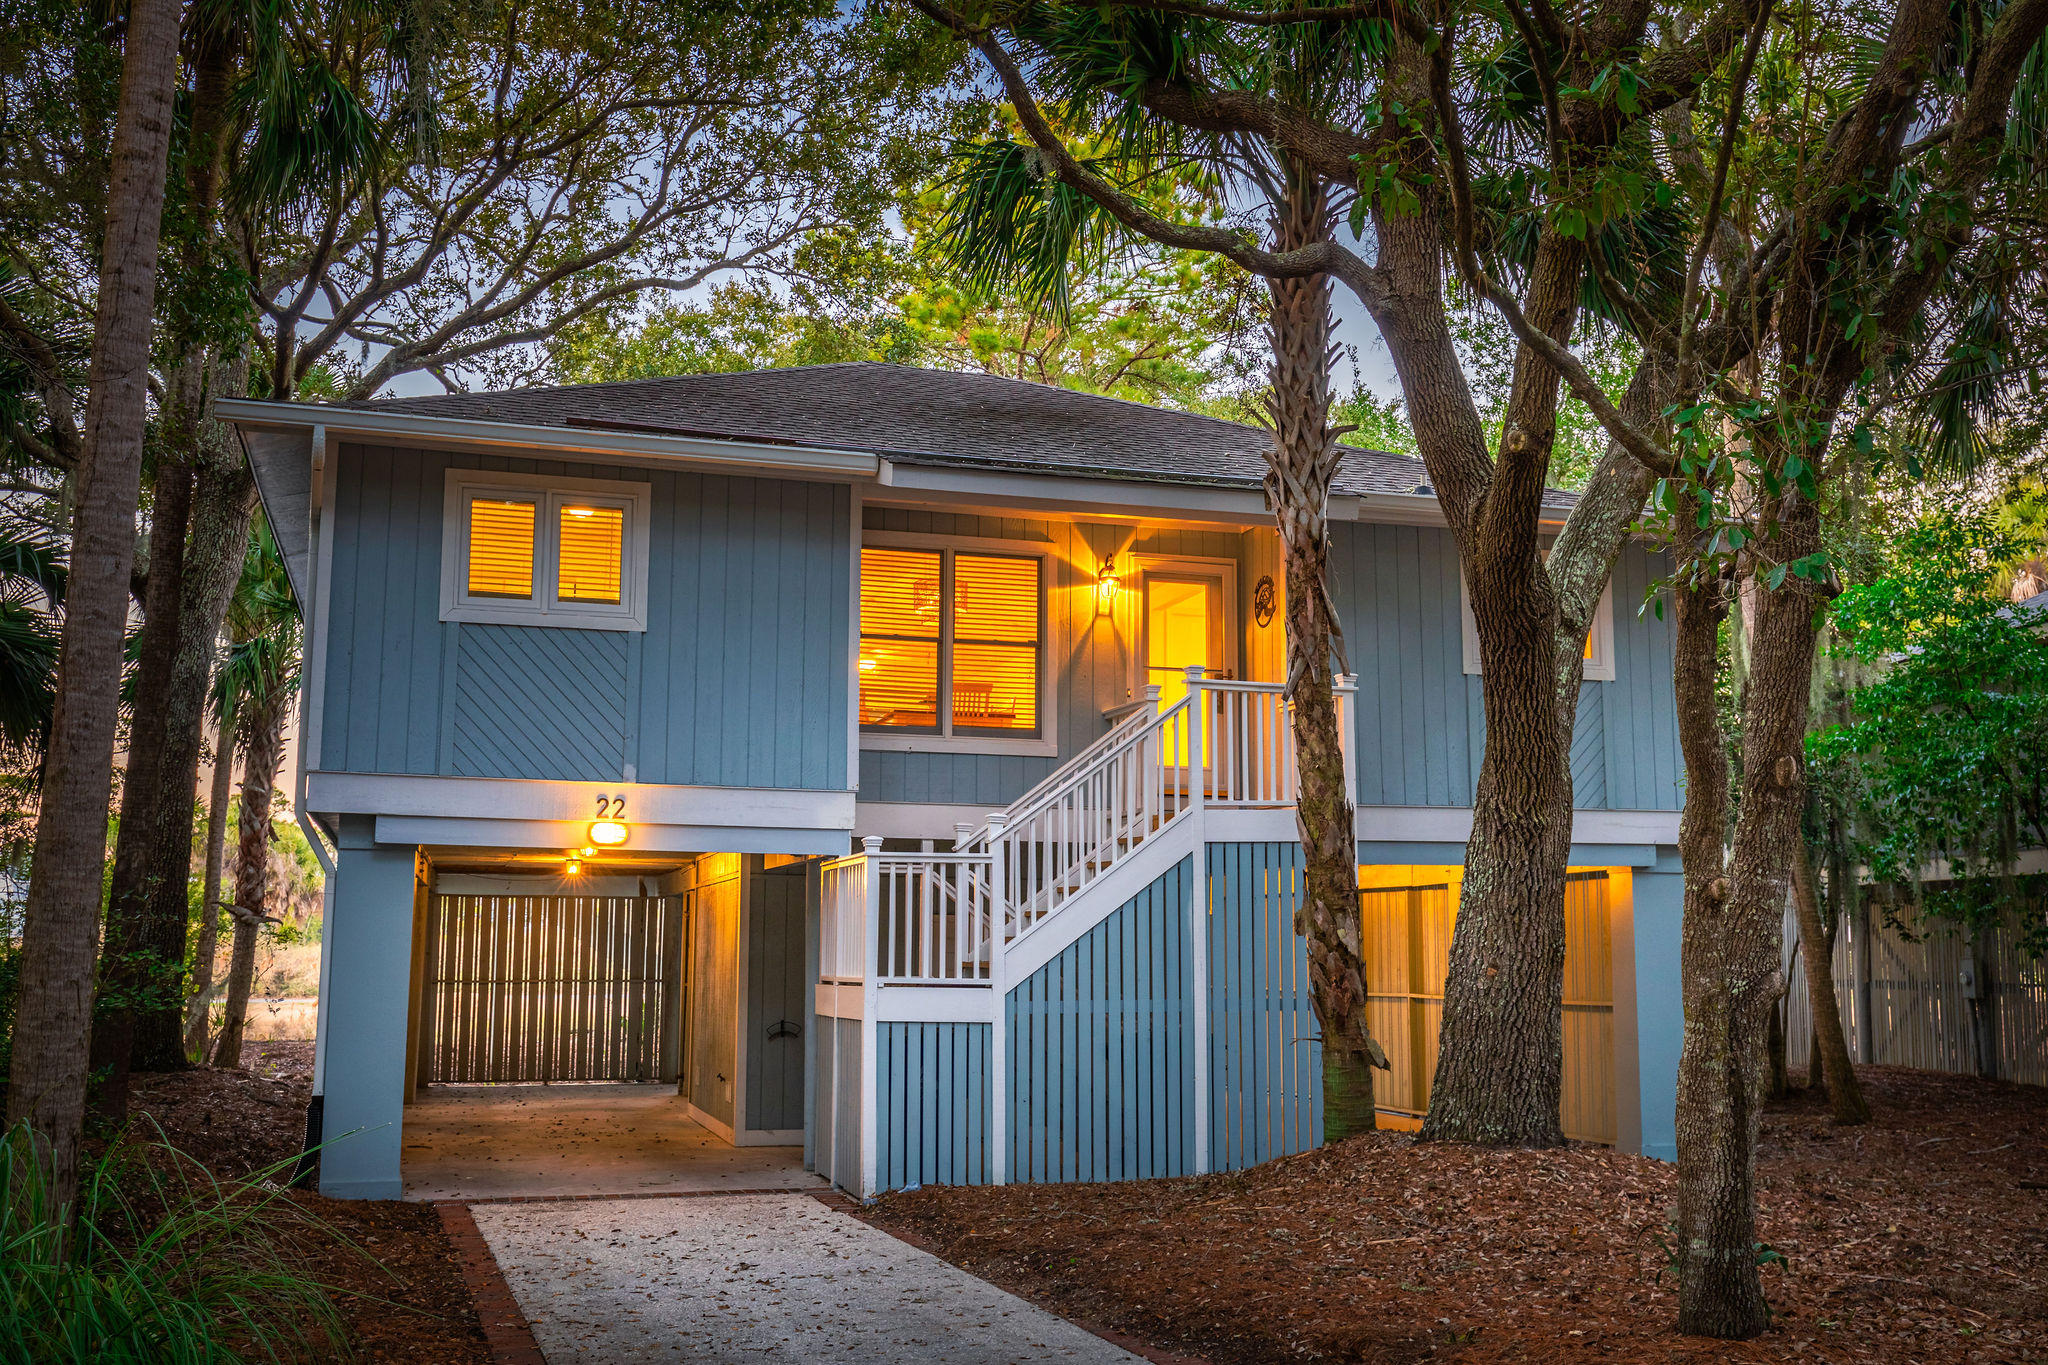 Wild Dunes Homes For Sale - 22 Twin Oaks, Isle of Palms, SC - 36